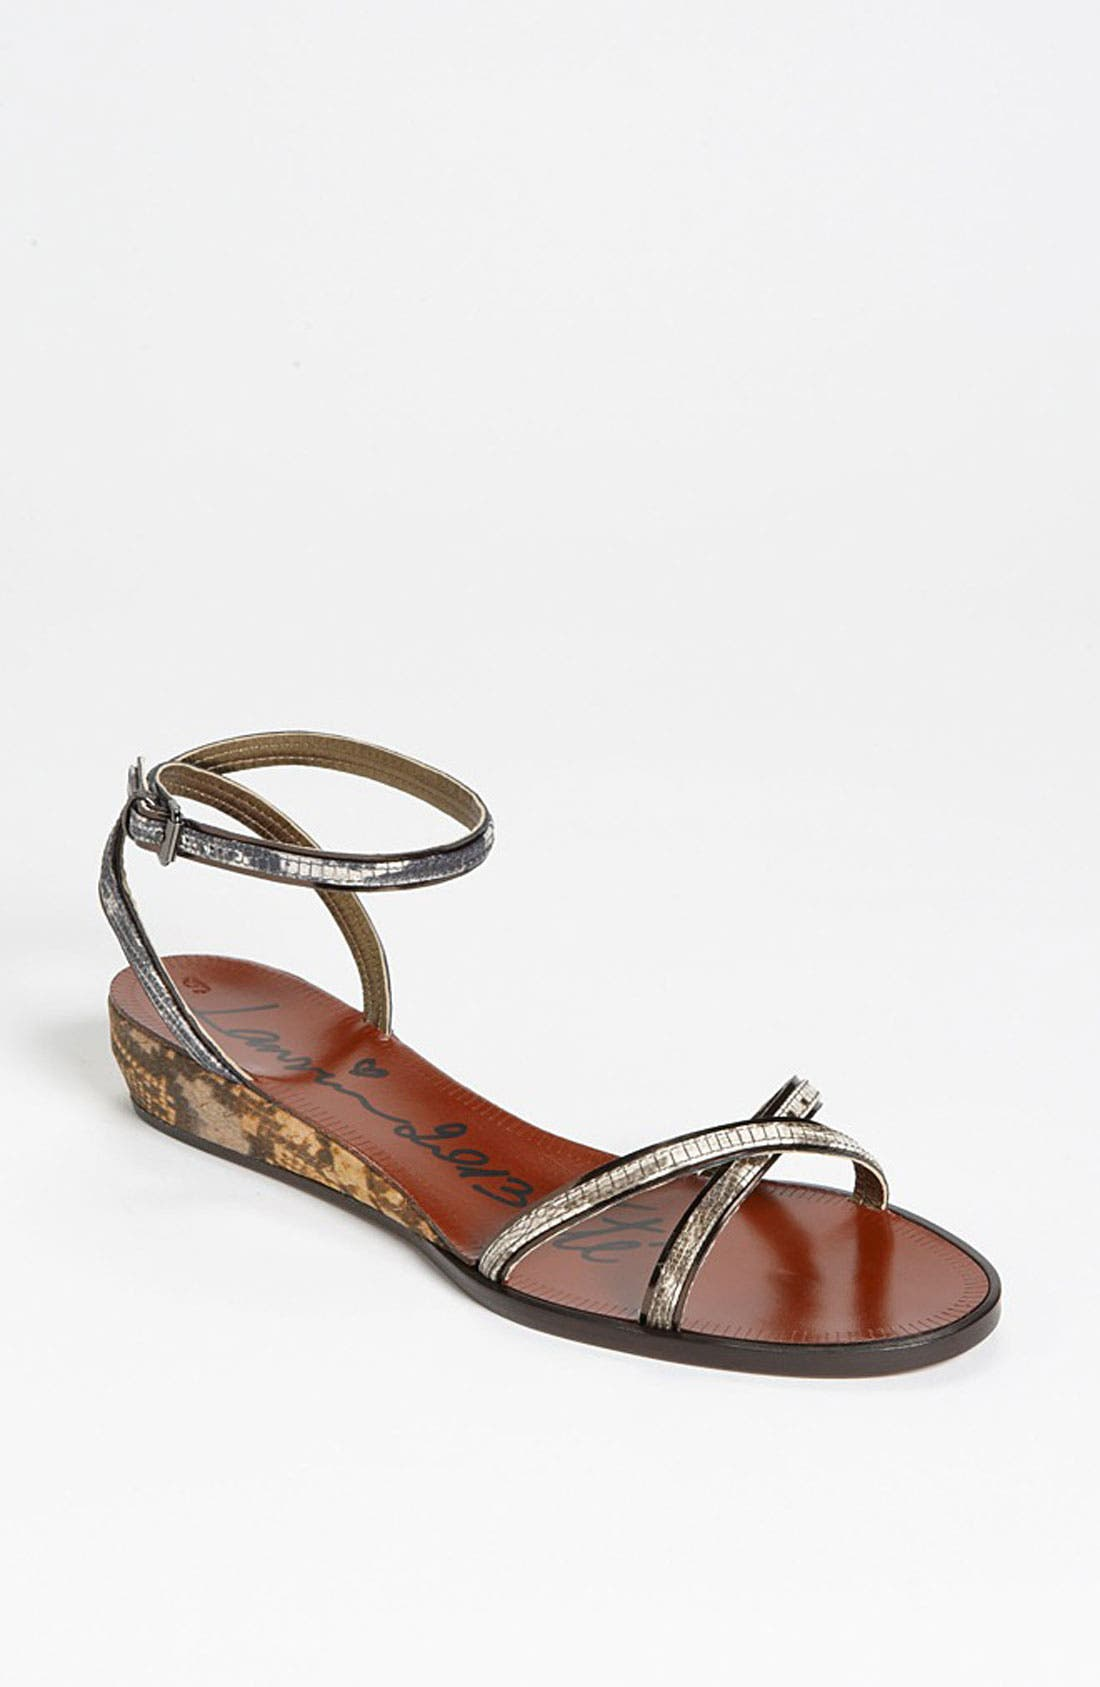 Alternate Image 1 Selected - Lanvin Mini Wedge Sandal